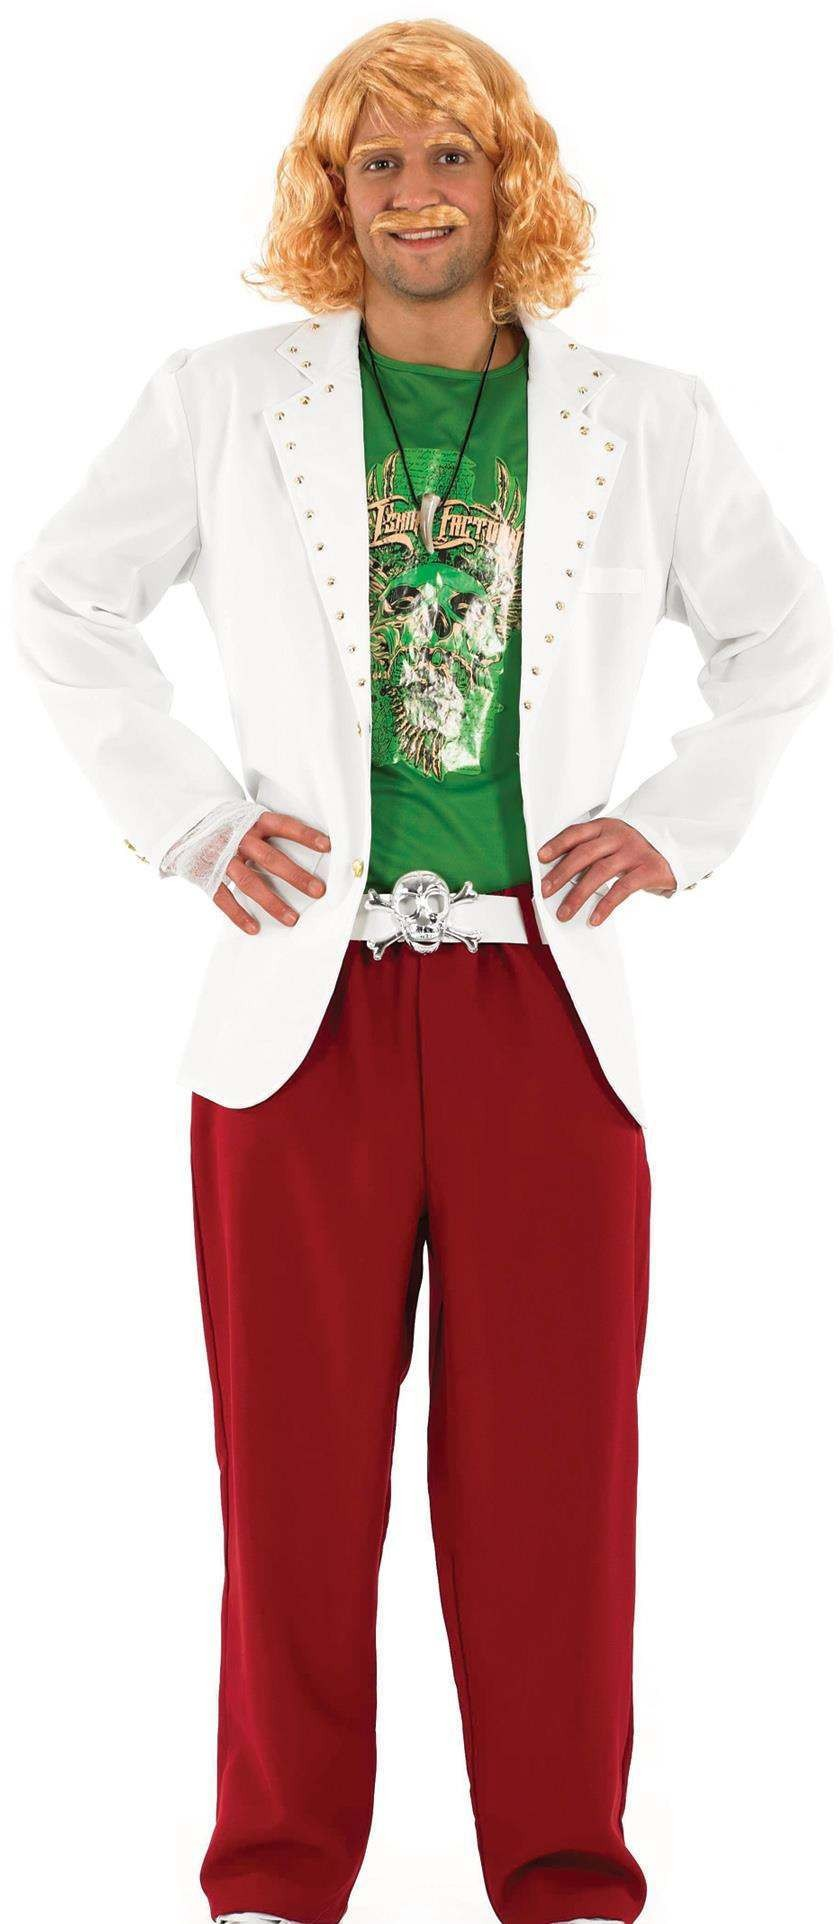 Mens Game Show Host Tv Outfit (White, Green)